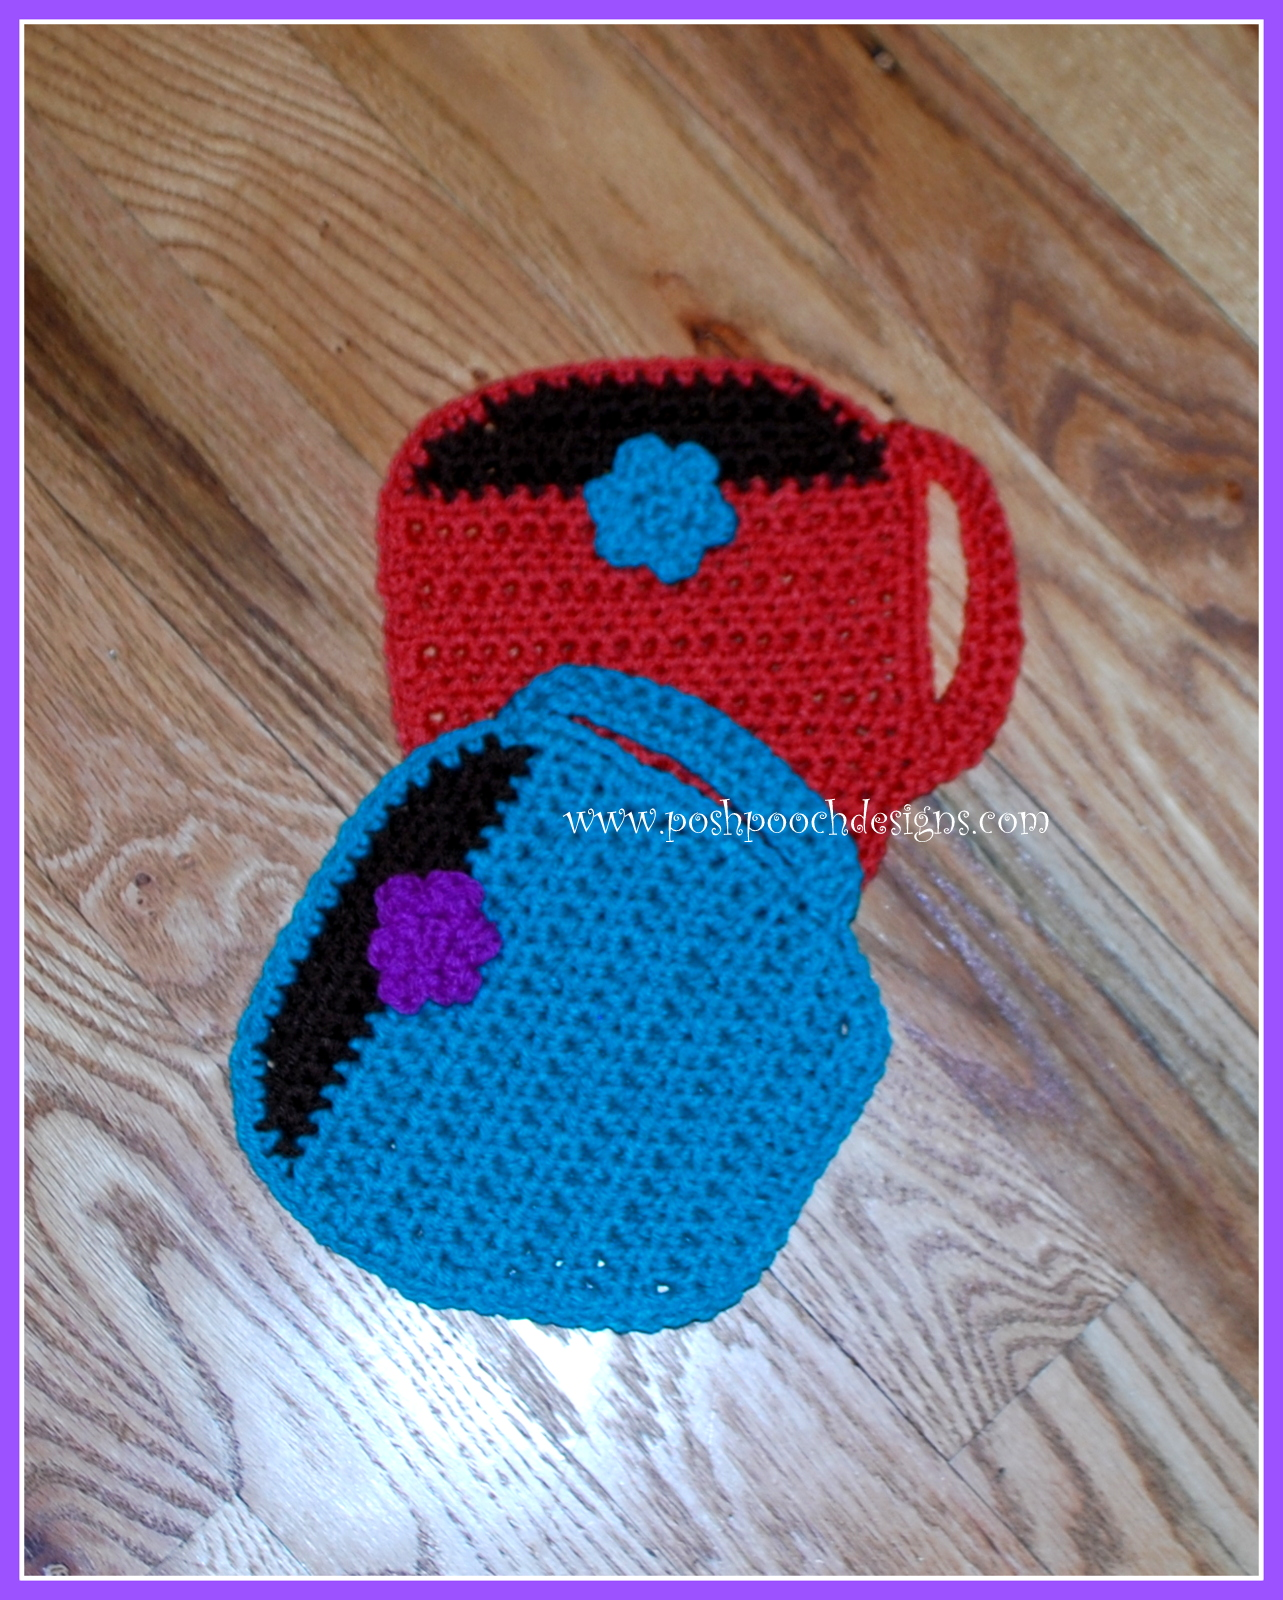 Posh Pooch Designs Dog Clothes: Coffee Cup Hot Pad Crochet Pattern